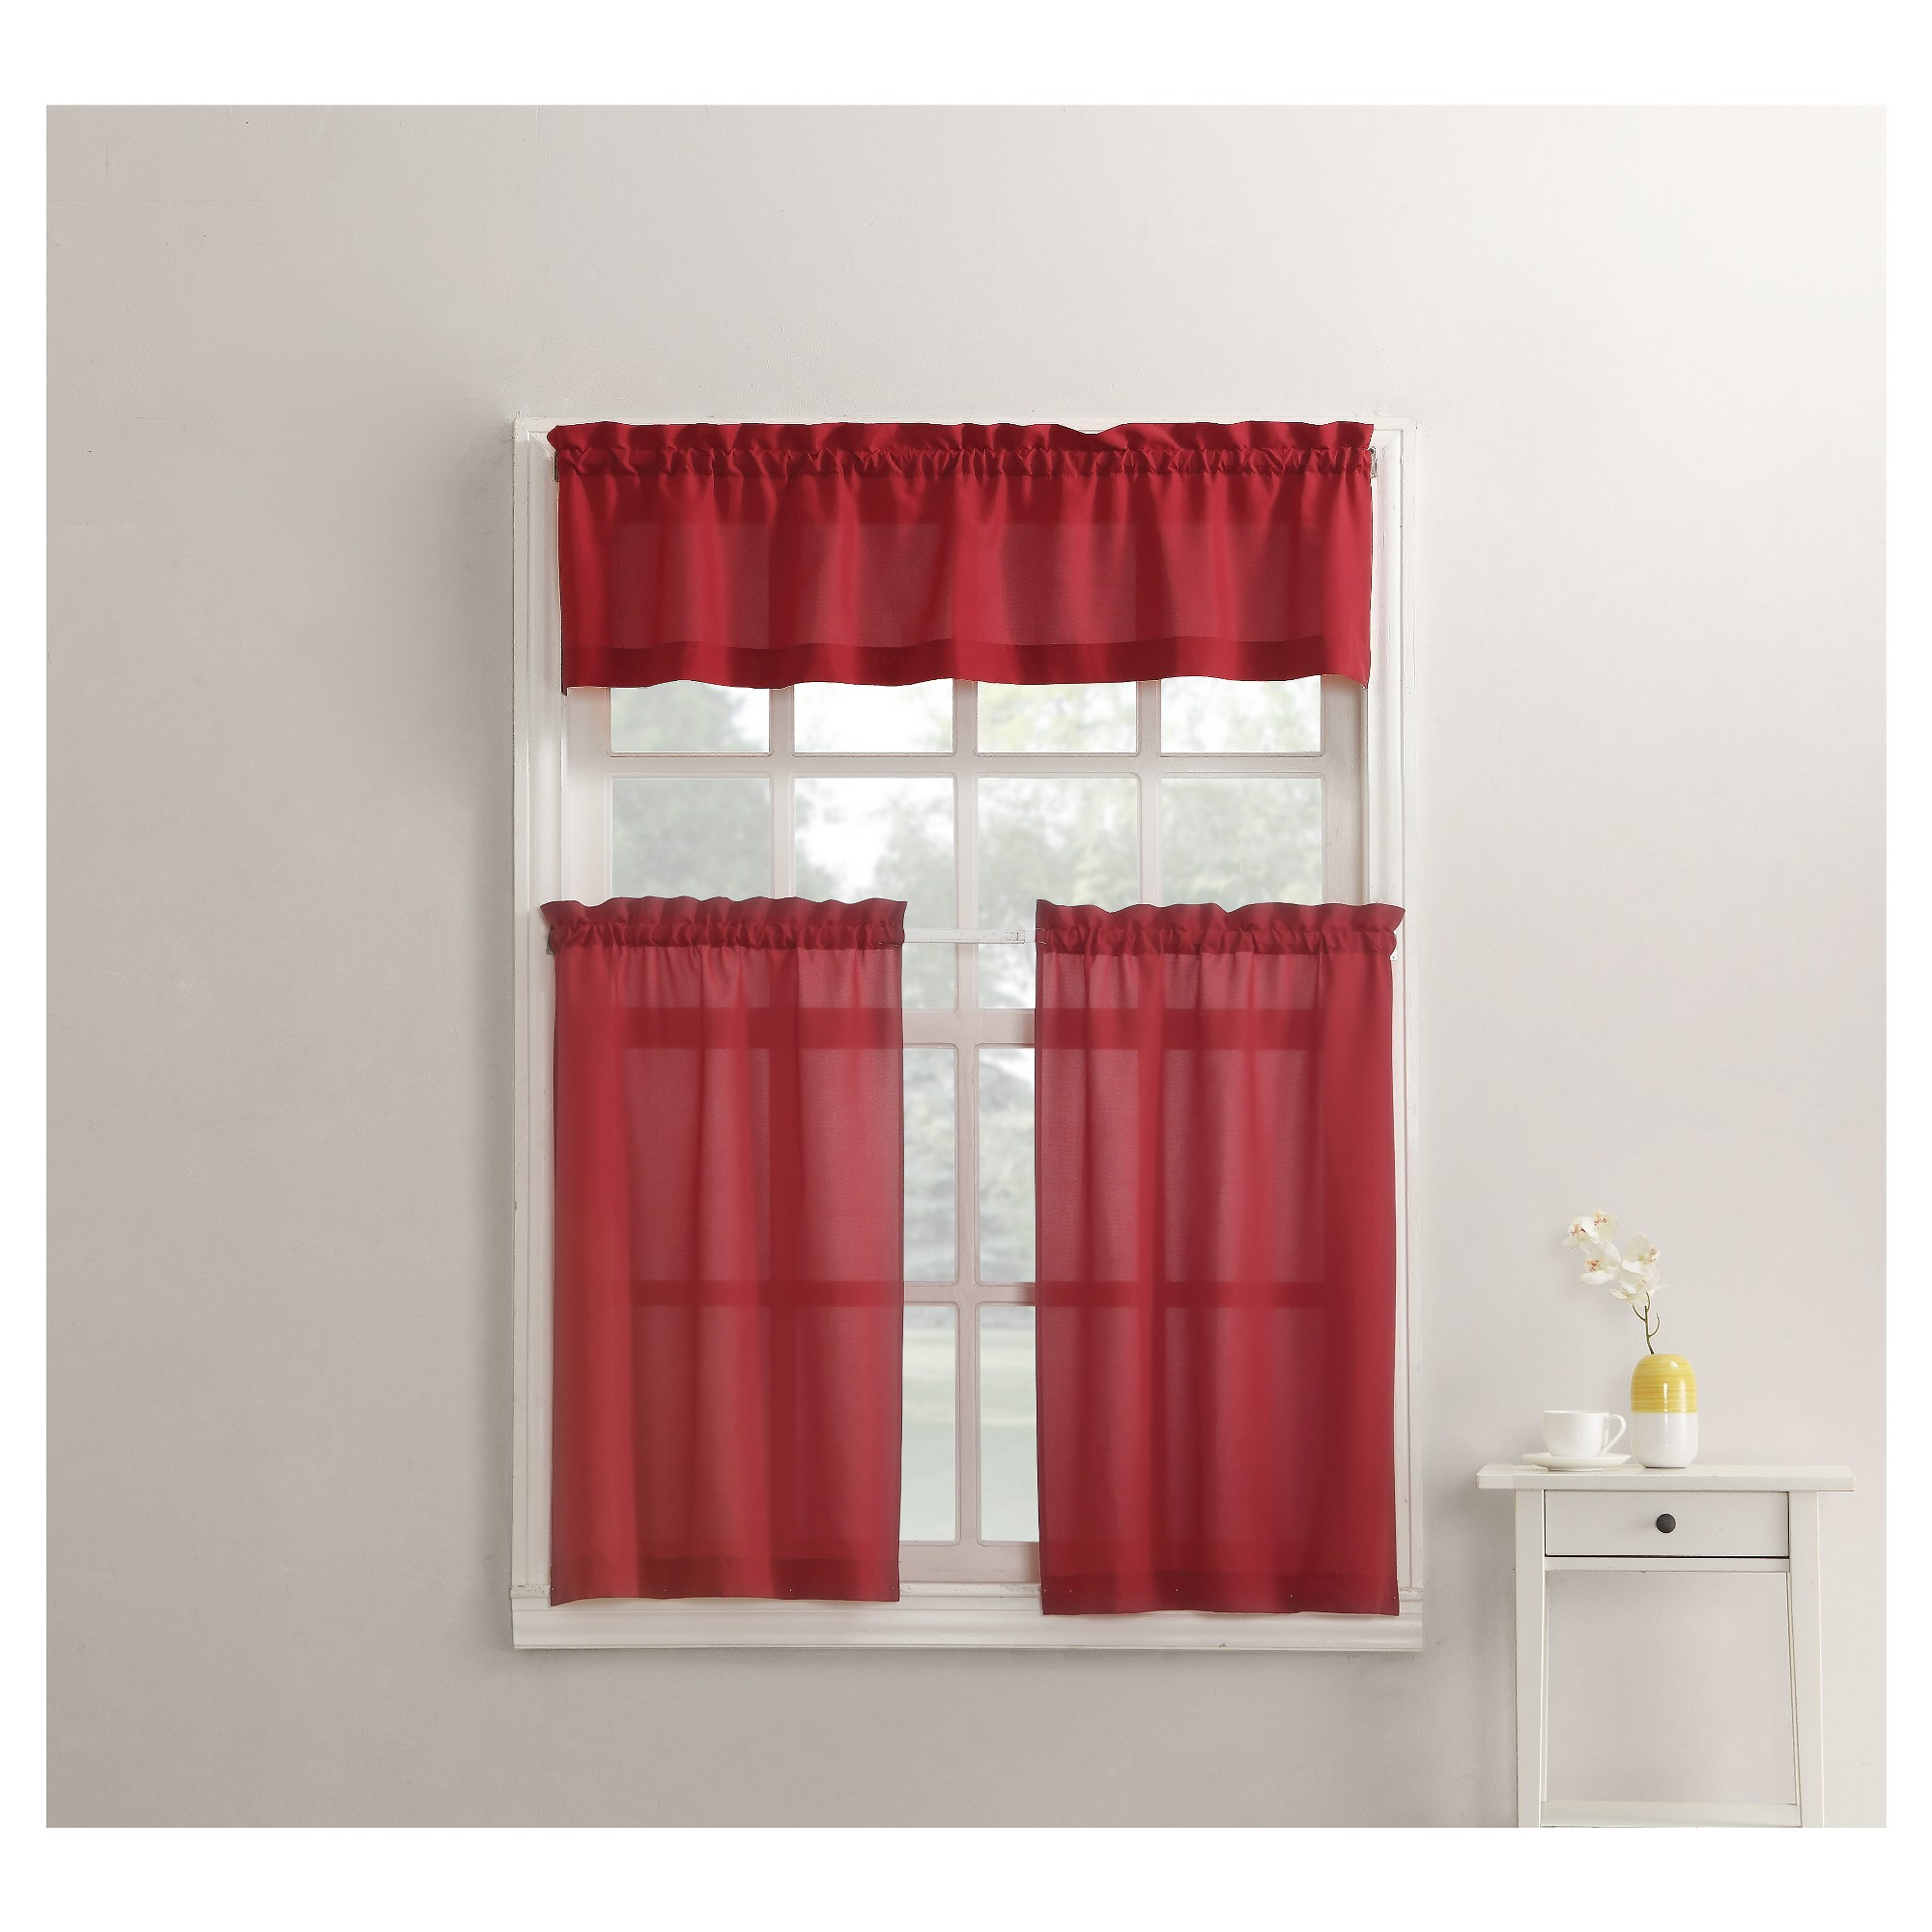 martine microfiber 3-piece kitchen curtain valance and tiers set red